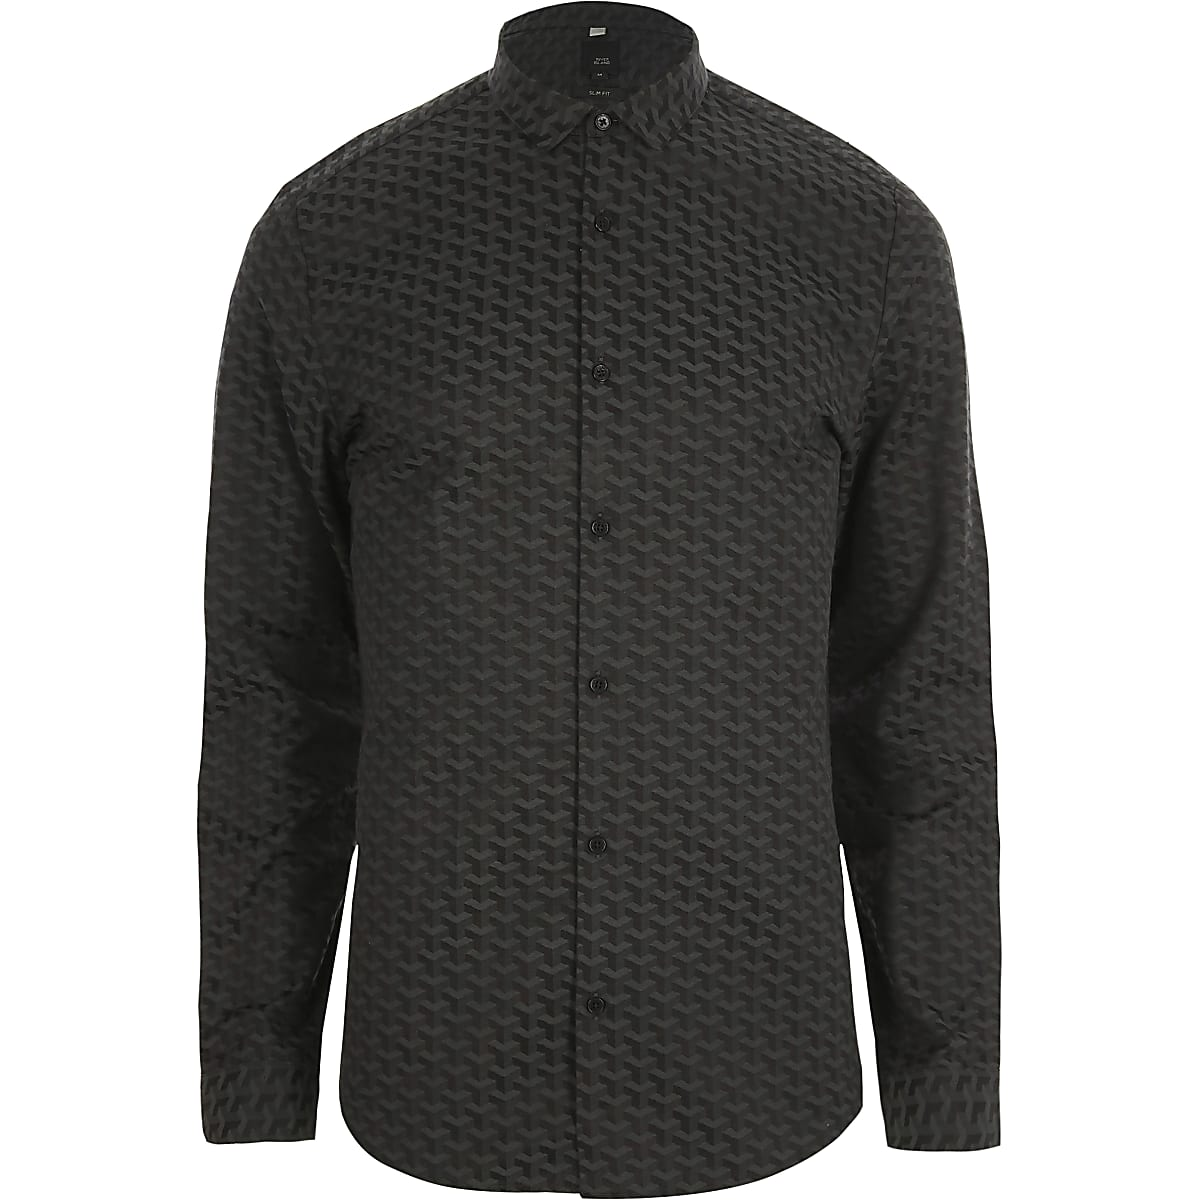 Black geo jacquard slim fit shirt